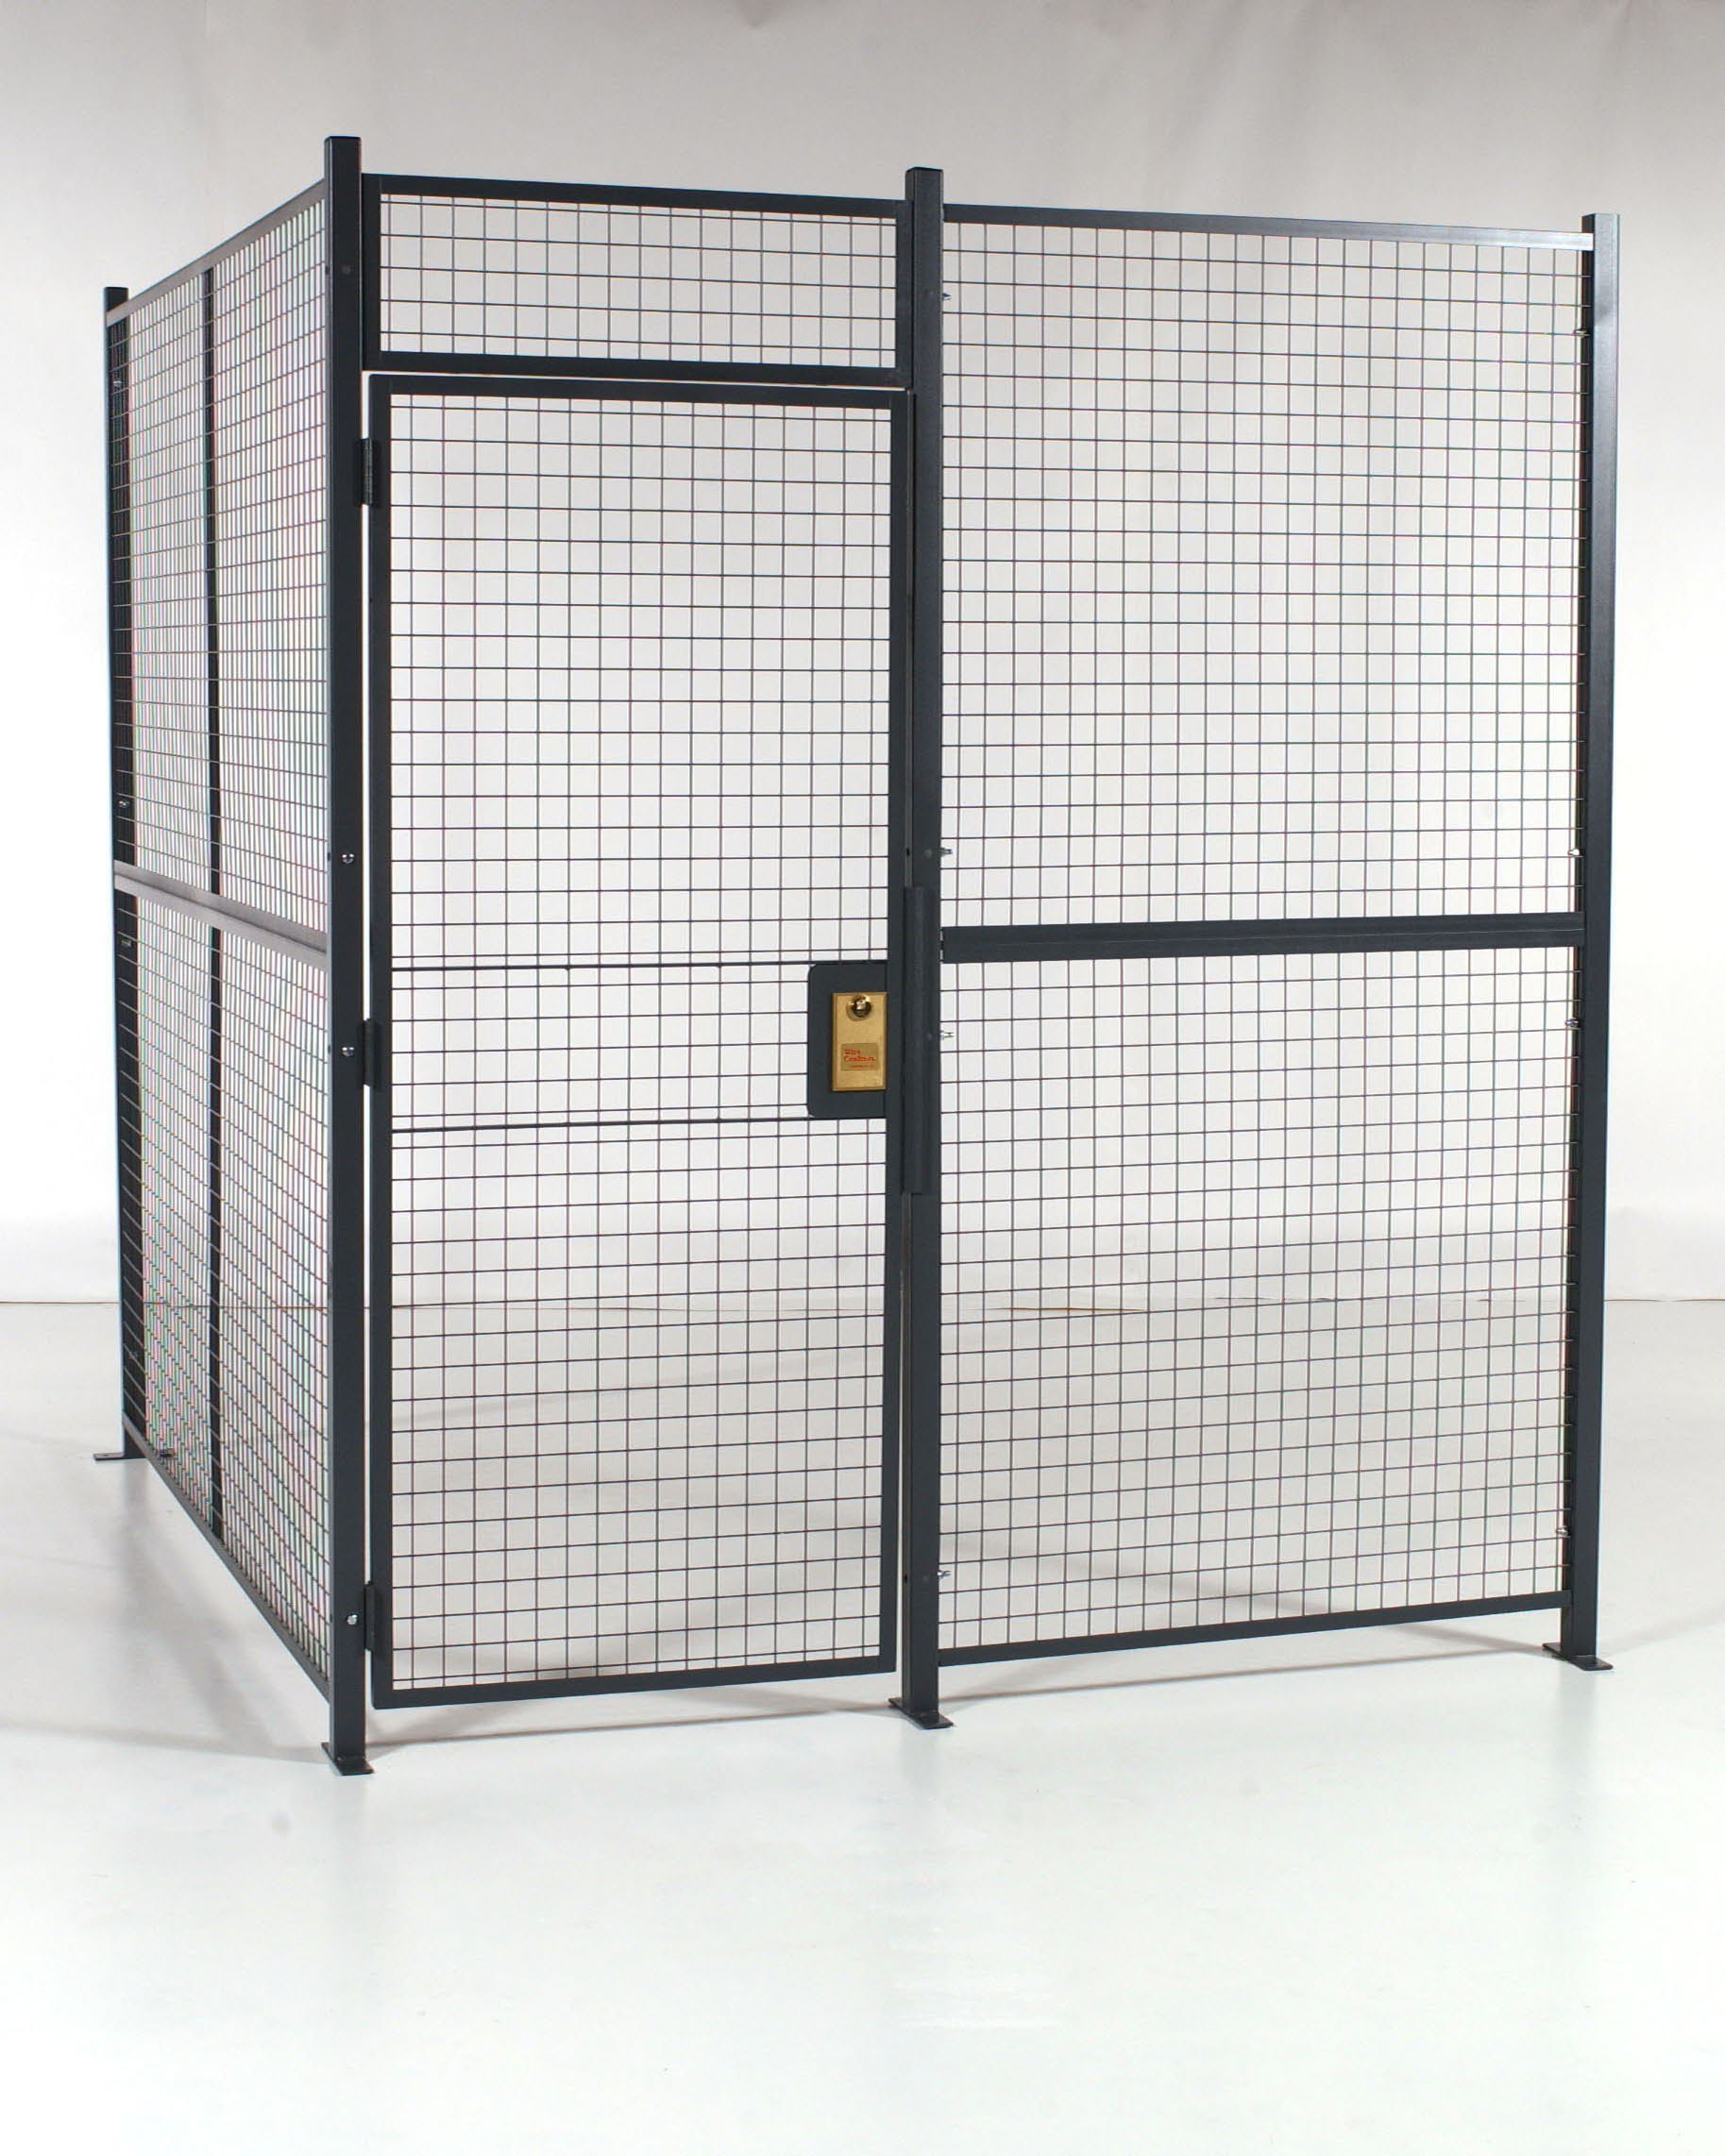 WireCrafters A121282W Welded Wire Mesh 2 Sided Cage with 3' Sliding Door, 10'6'' Length x 10'4'' Width x 10'5-1/4'' Height, Gray